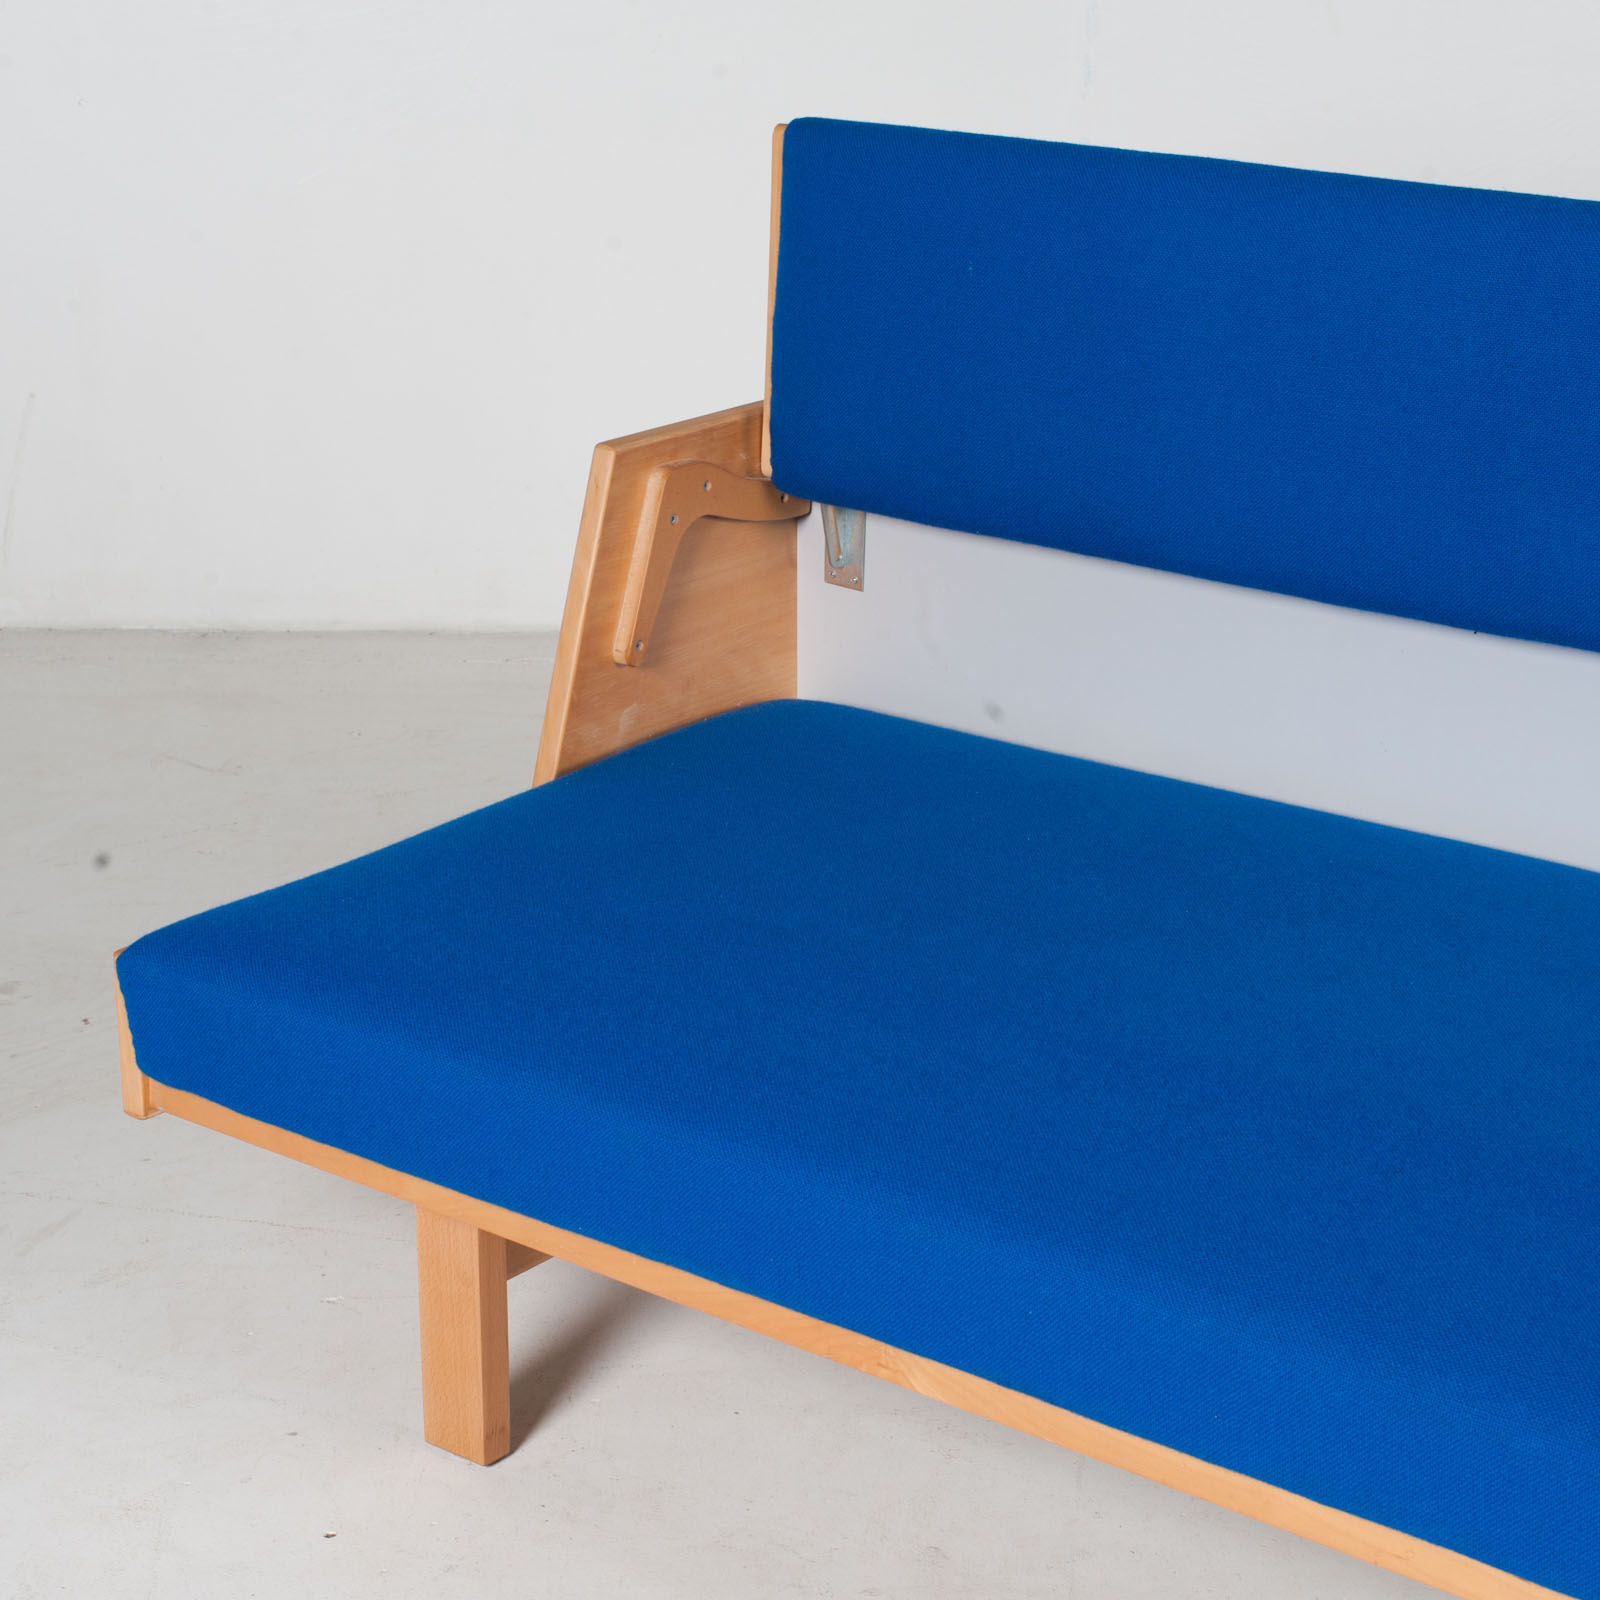 Ge 258 Daybed By Hans J. Wegner In Beech With Original Blue Upholstery For Getama, 1960s, Denmark6